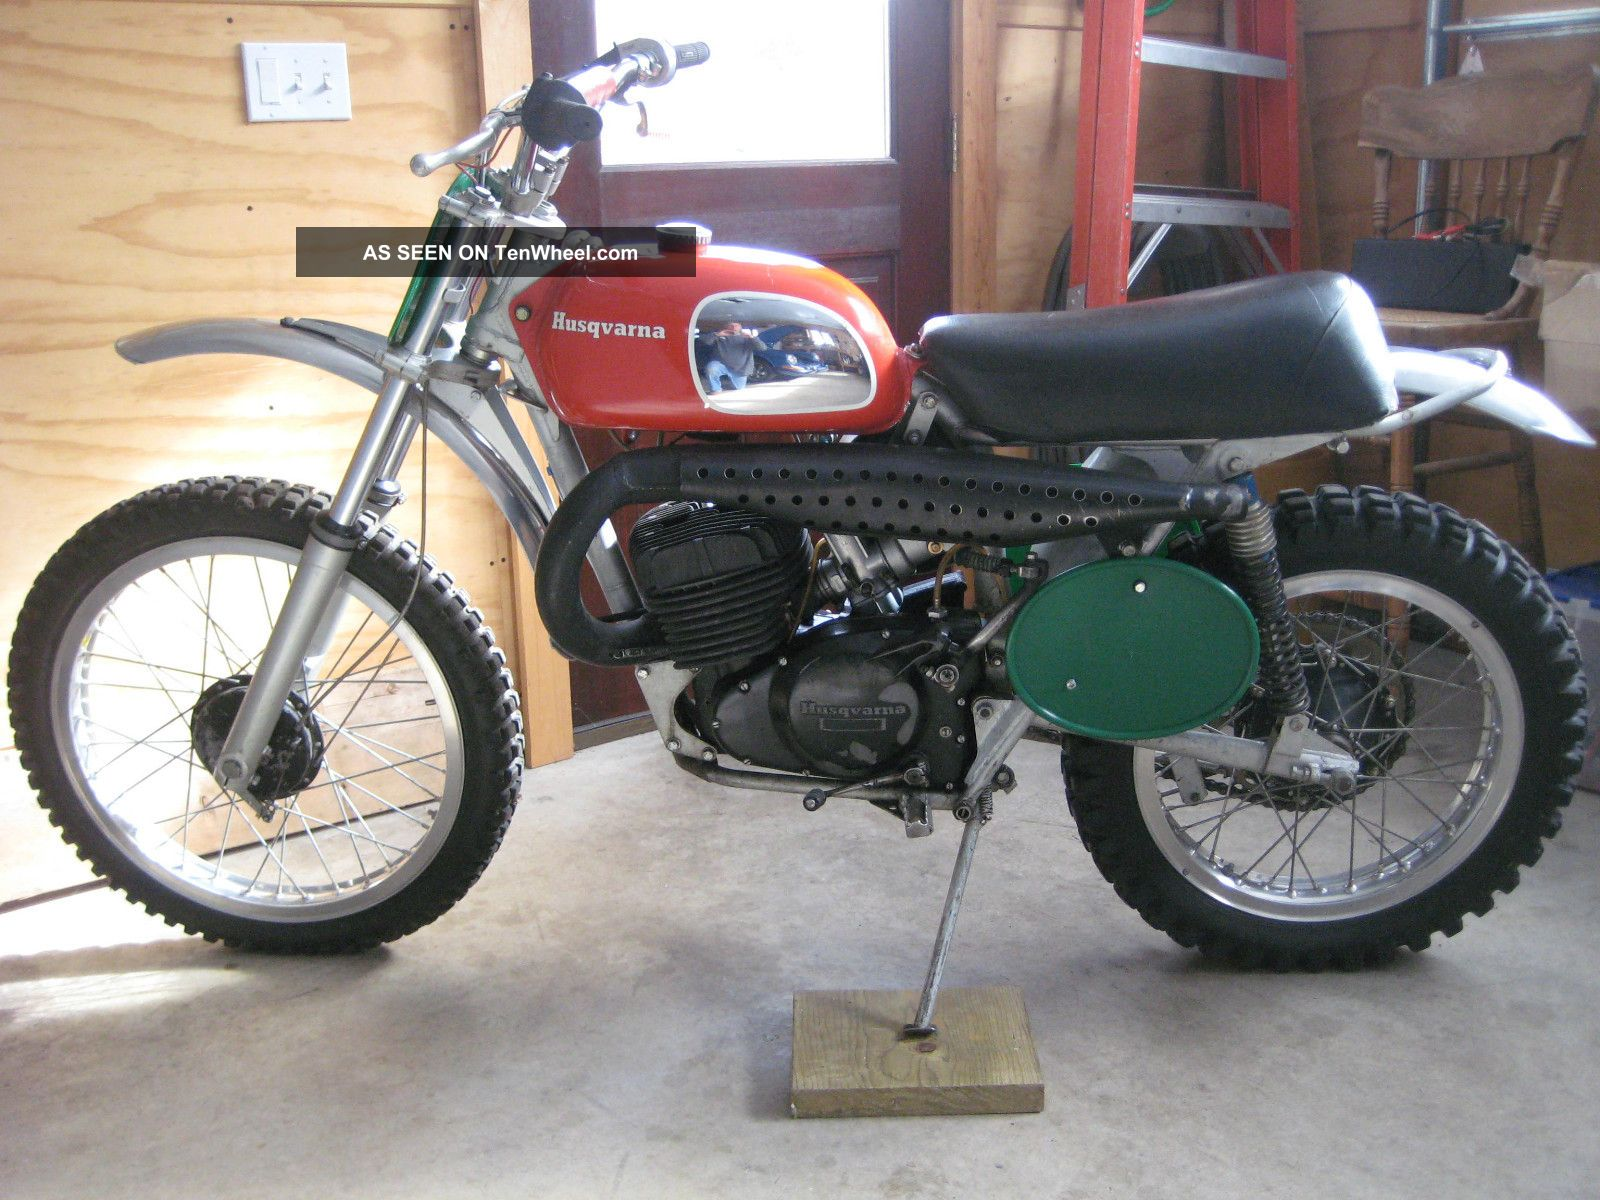 1973 Husqvarna Cr - 250 Condition Husqvarna photo